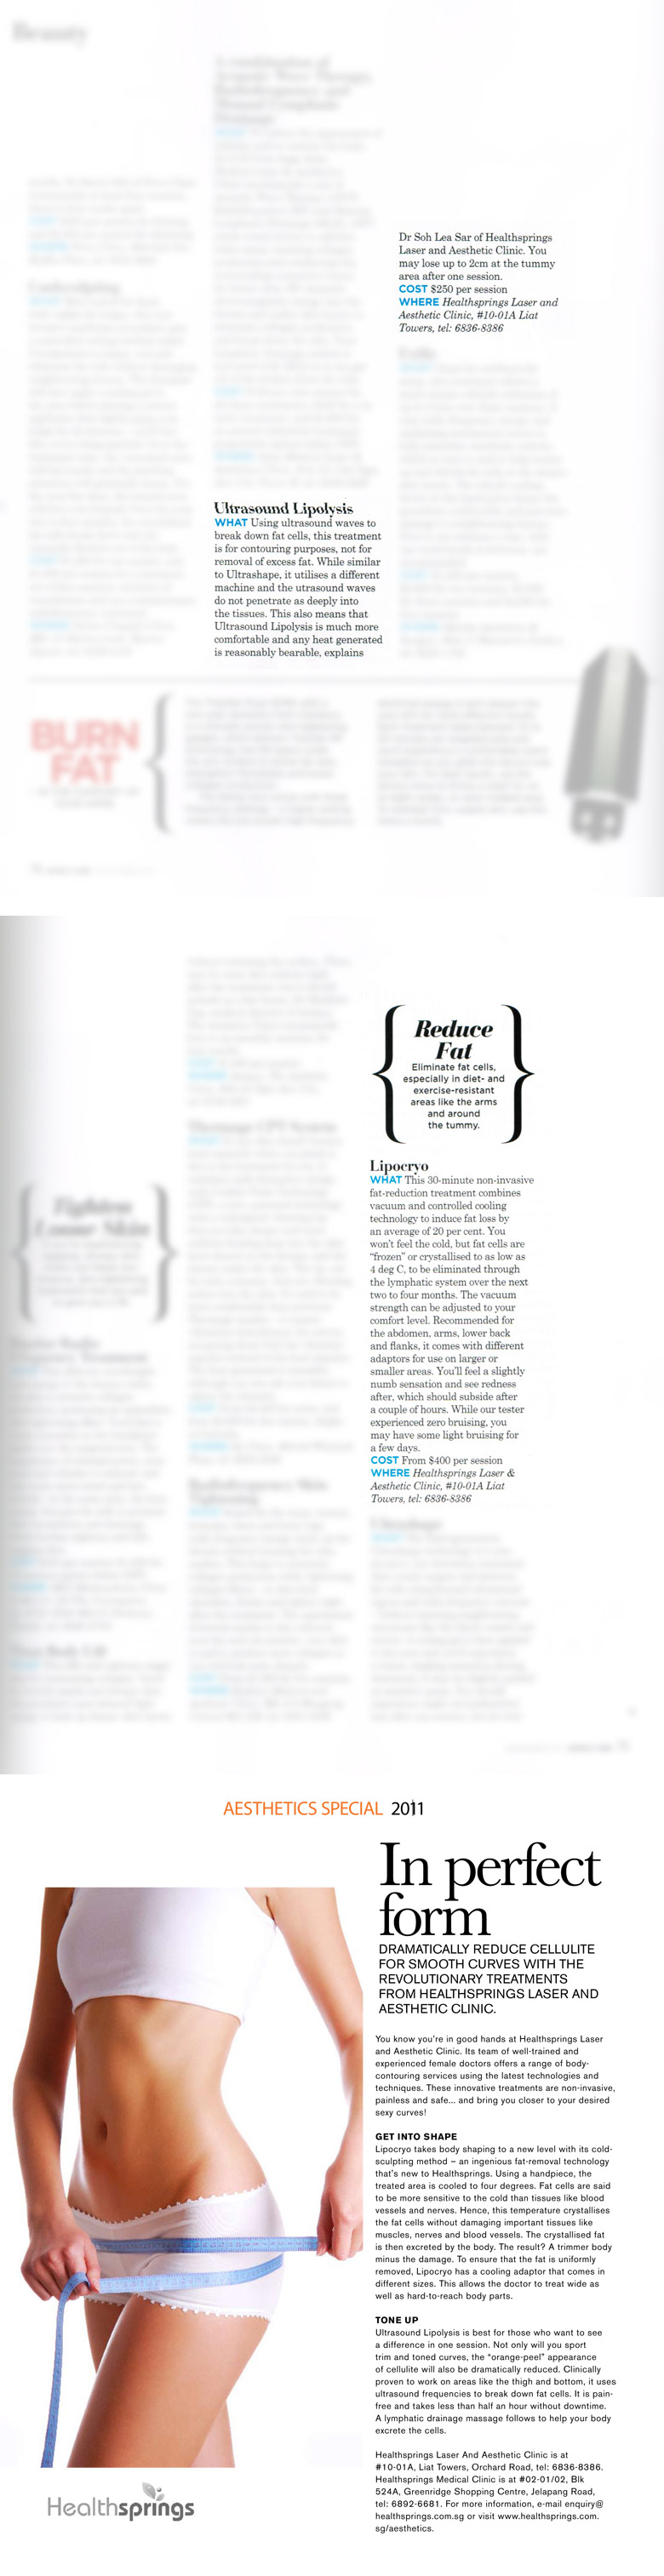 Press Media - Simply Her Magazine (Dec 2011 Issue)